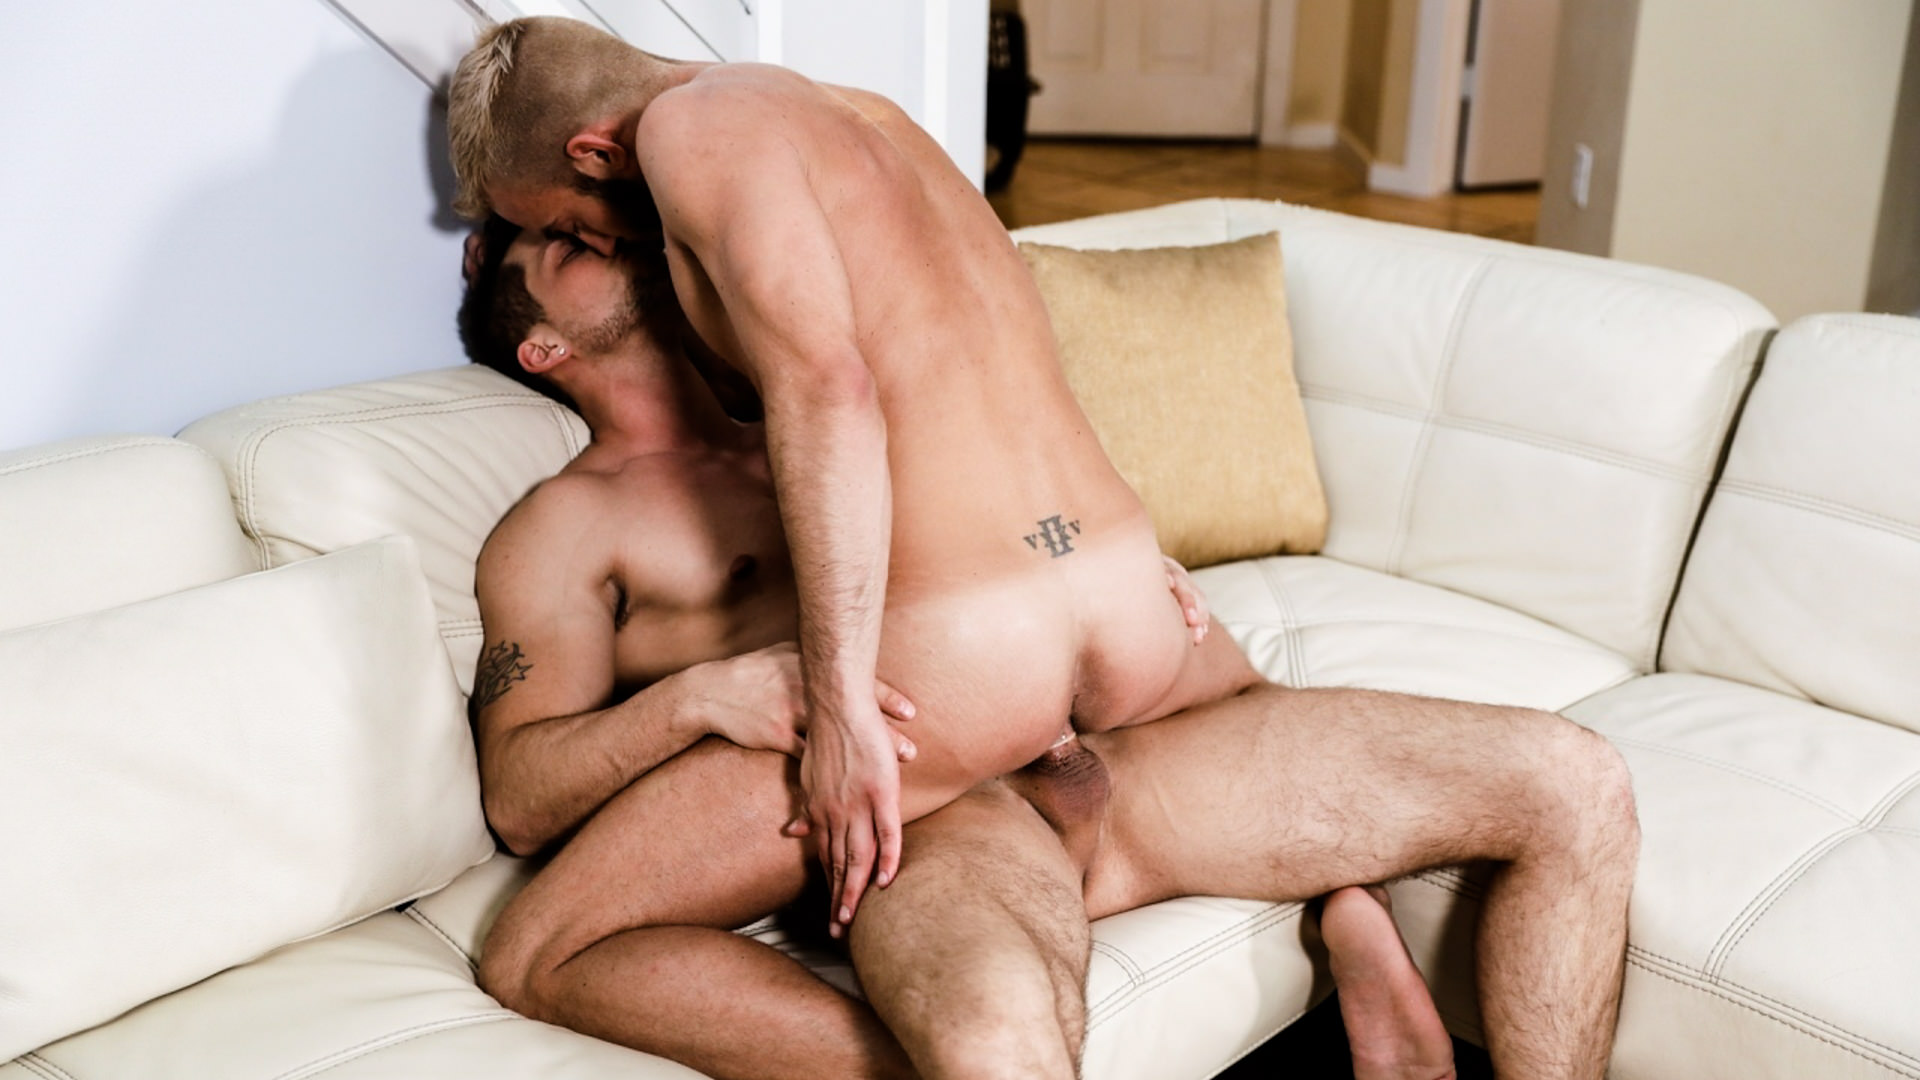 Men for Men Blog 70676_04_01 Michael Roman and Jett Rink kiss passionately then the hardcore ass fucking begins ending in both young dudes covered in cum Icon Male